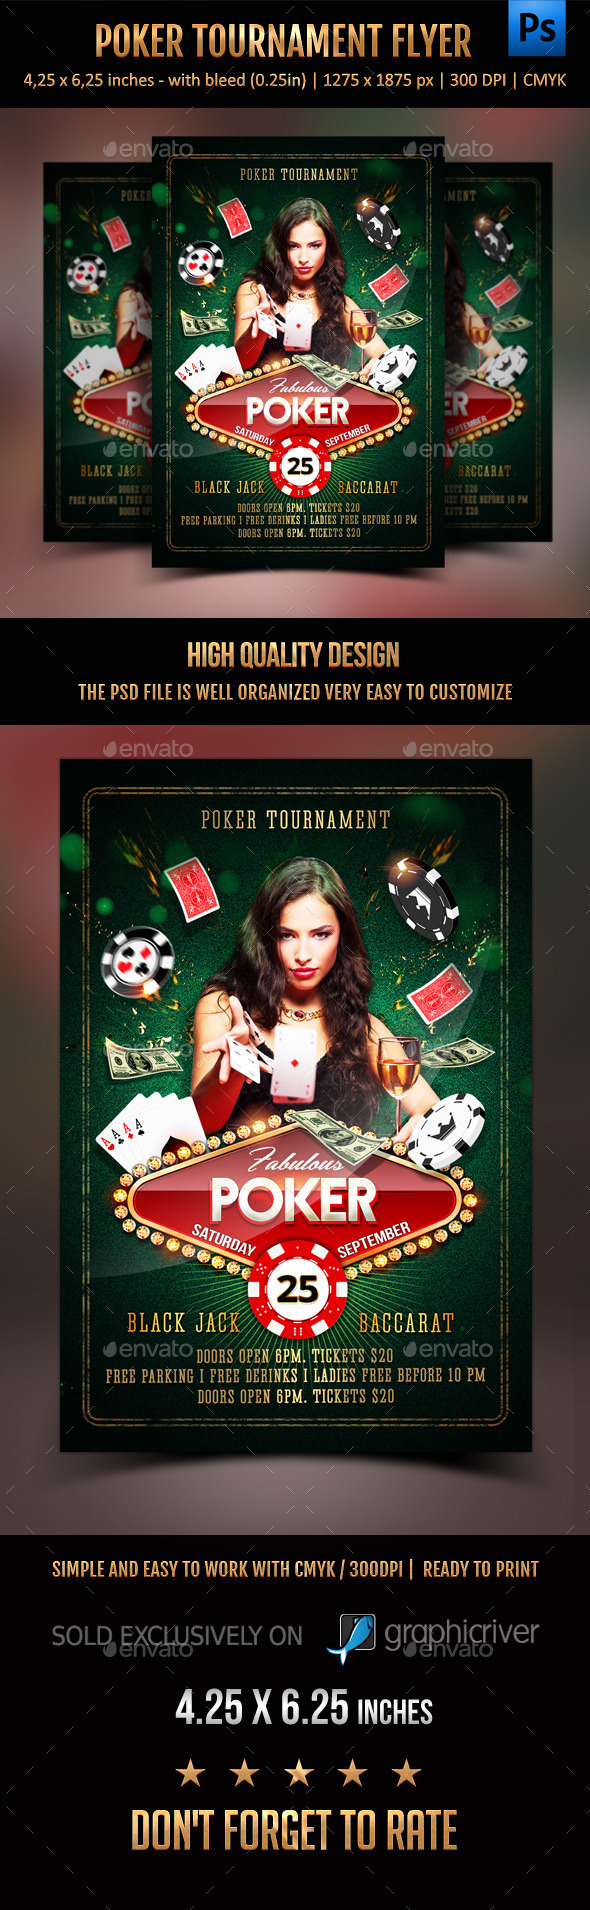 Poker tournament add on